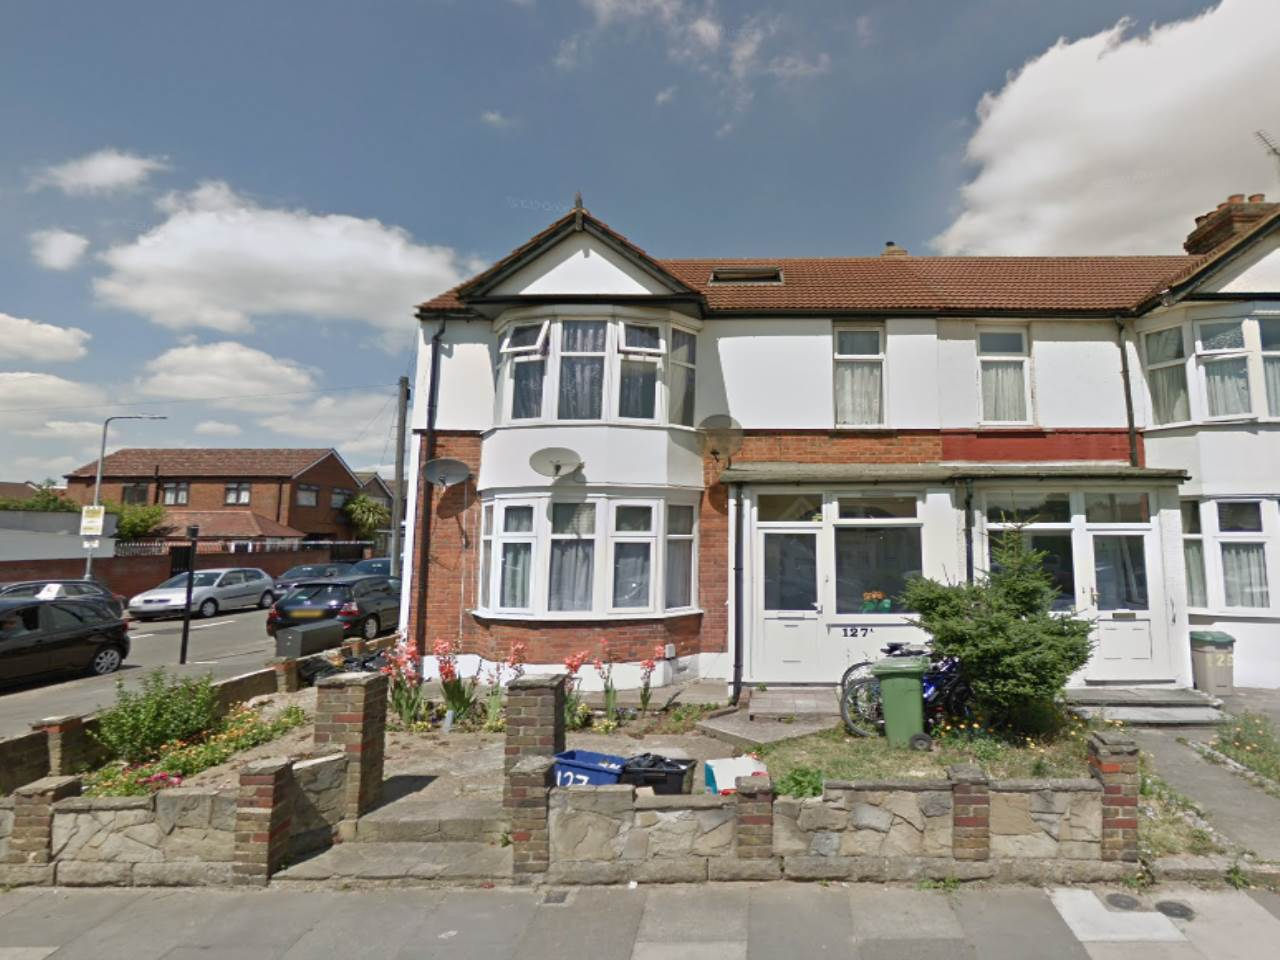 2 bed flat to rent in Breamore Road, Goodmayes, IG3